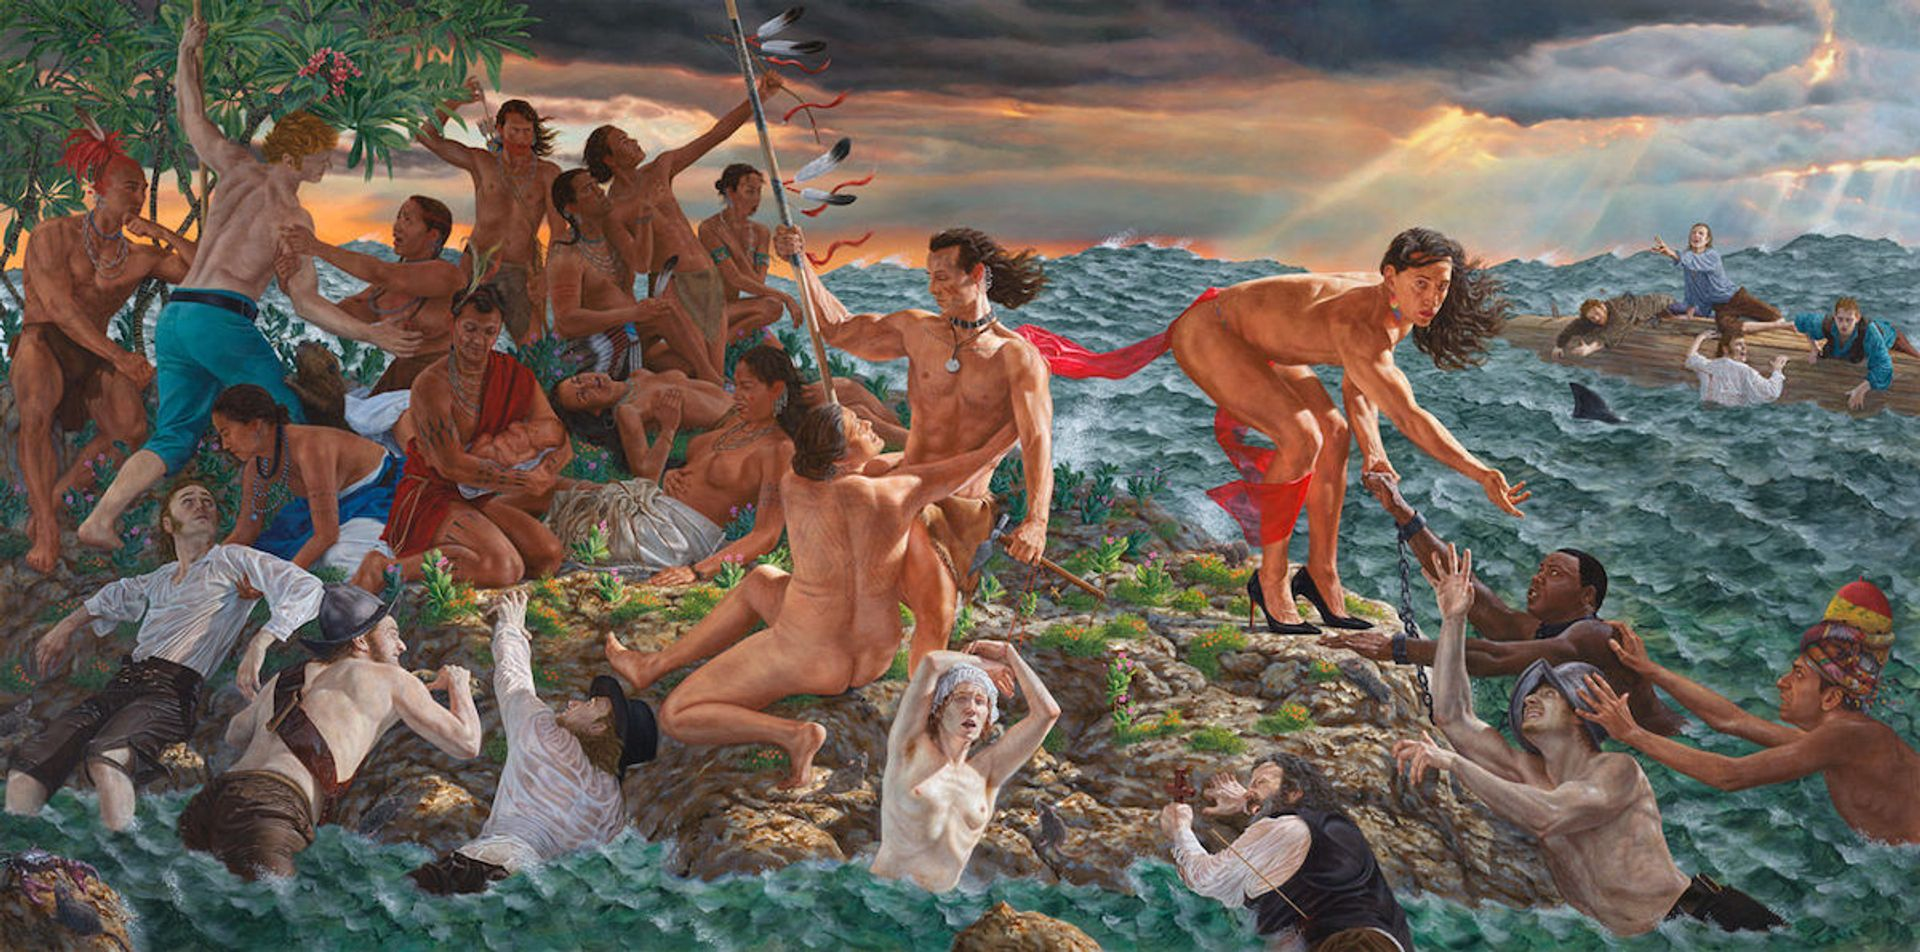 Kent Monkman, Welcoming the Newcomers (2019) Courtesy of the artist